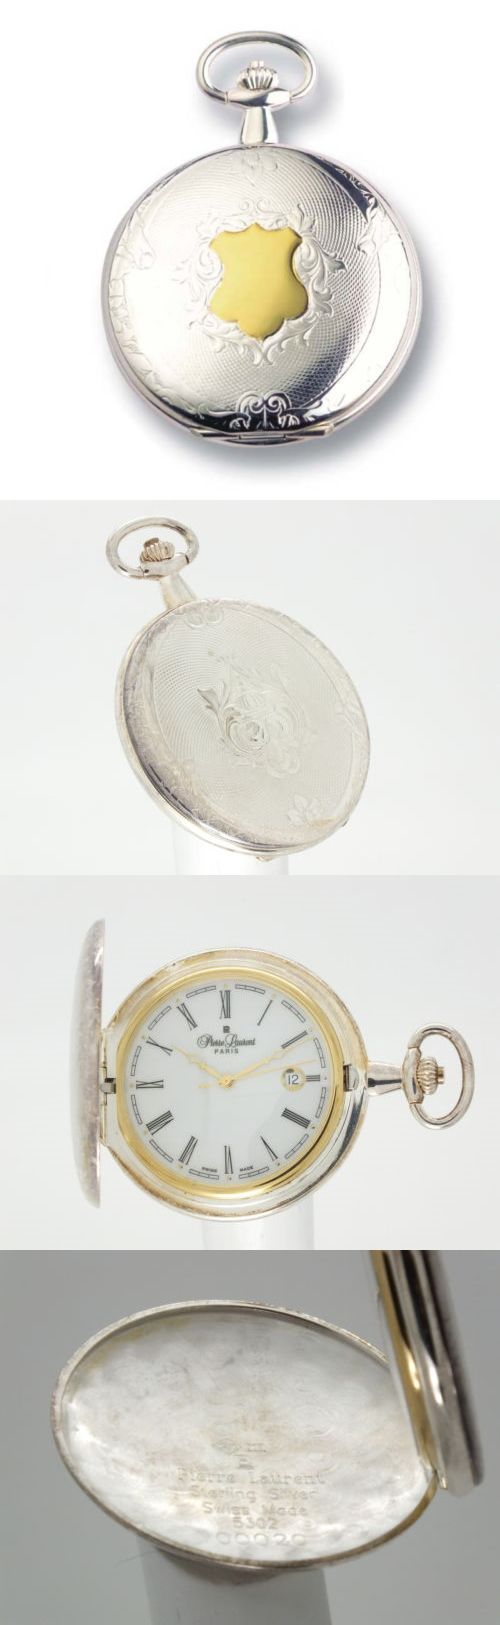 Modern 3938: Pierre Laurent 5302 Swiss Made Sterling Silver Pocket Watch -> BUY IT NOW ONLY: $526.5 on eBay!